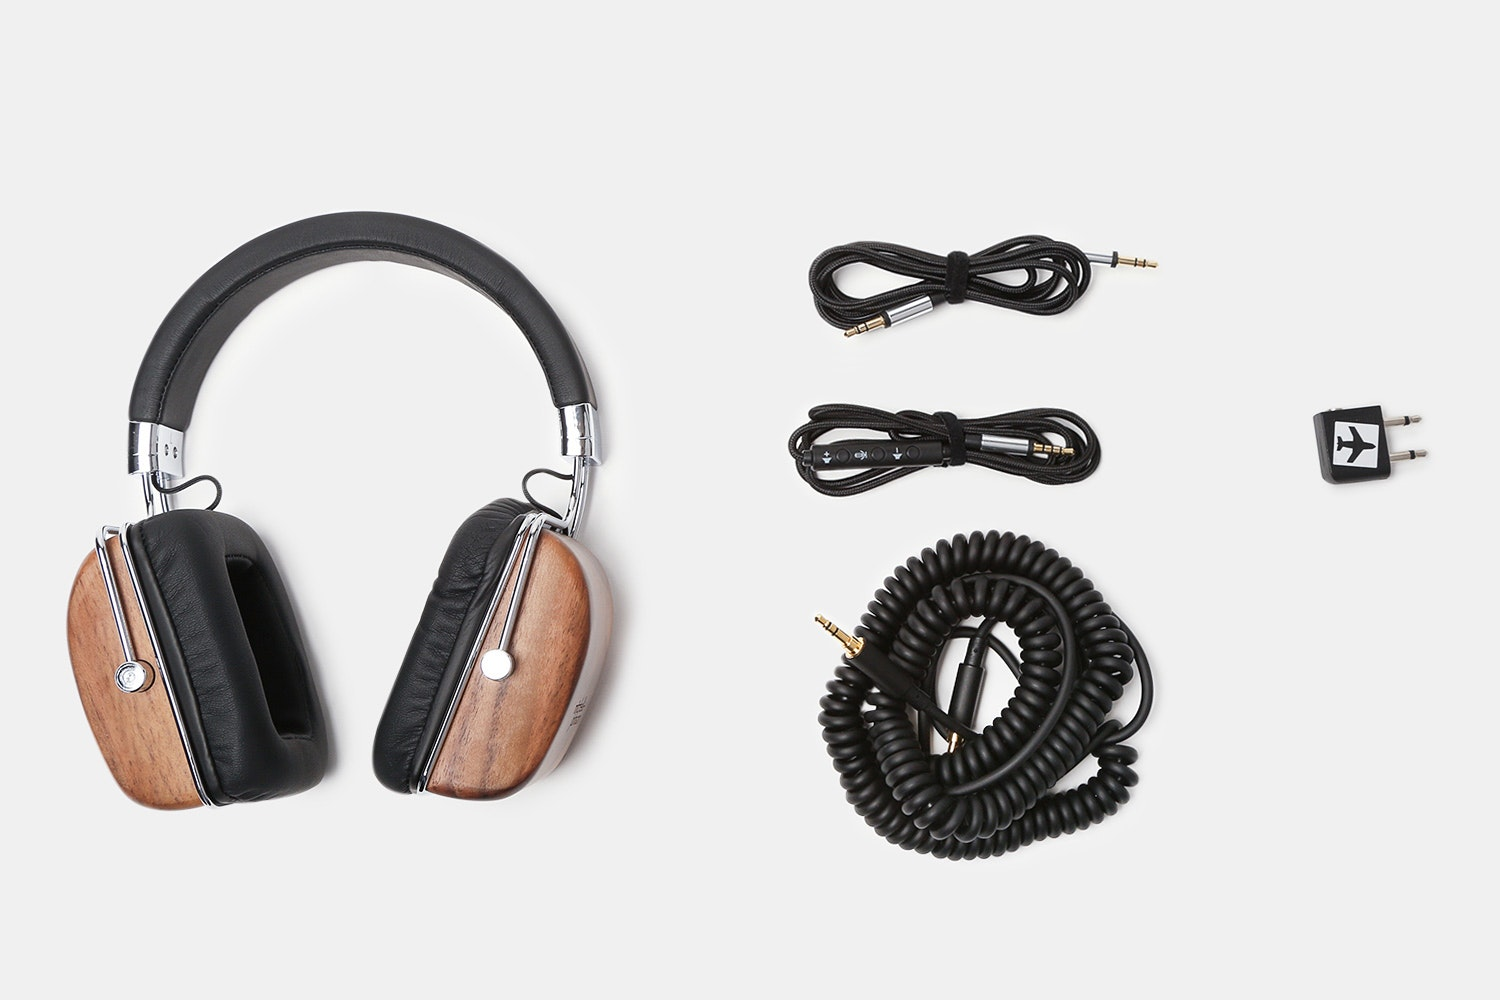 Mitchell & Johnson MJ1 Headphones